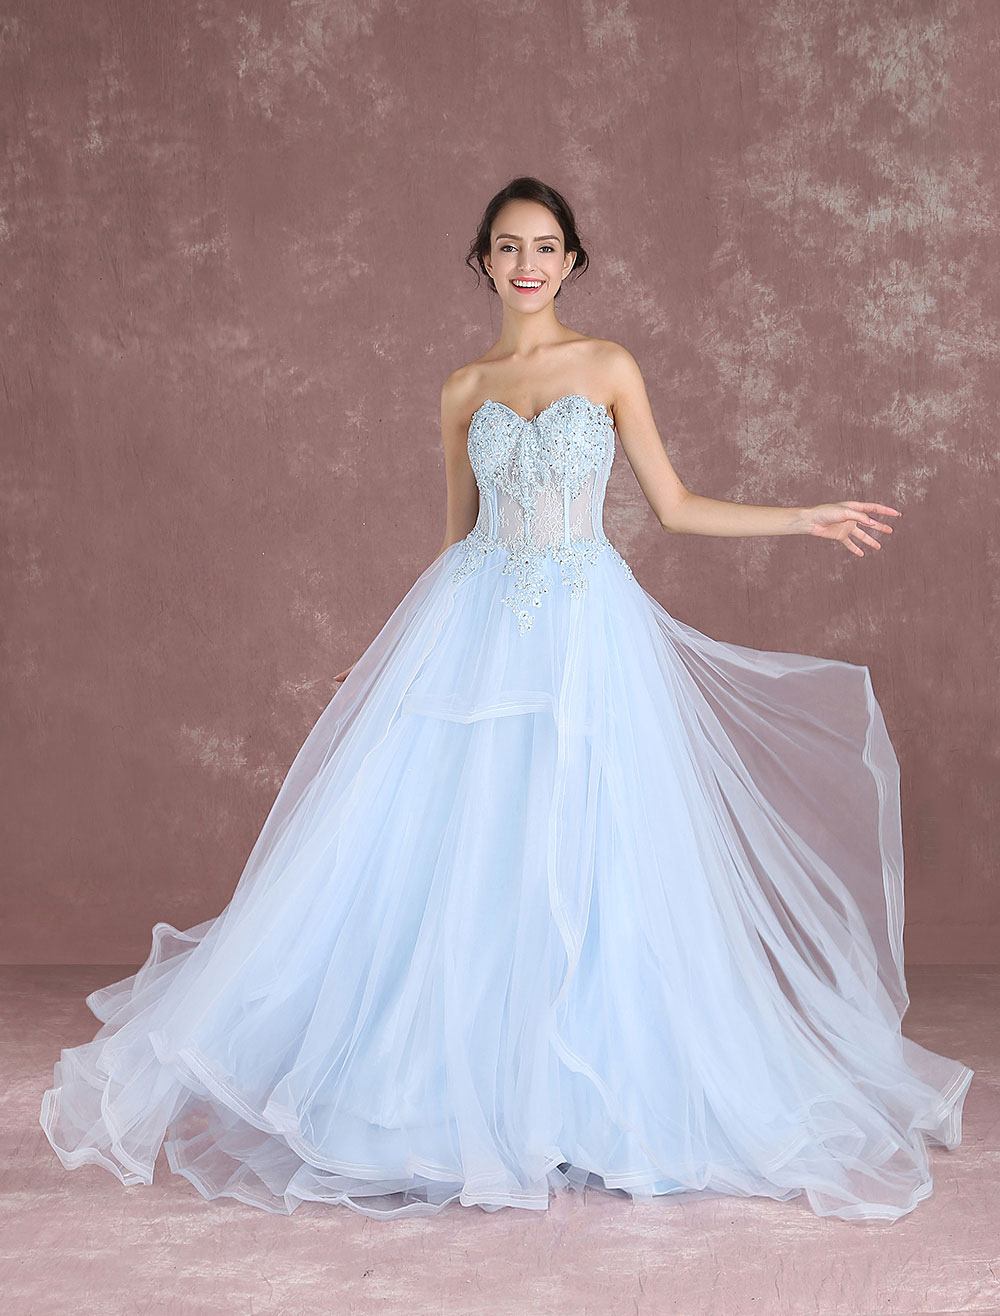 Summer Wedding Dresses 2019 Tulle Pastel Blue Bridal Gown Strapless Sweetheart Lace Applique Beading Boned Bridal Dress With Train